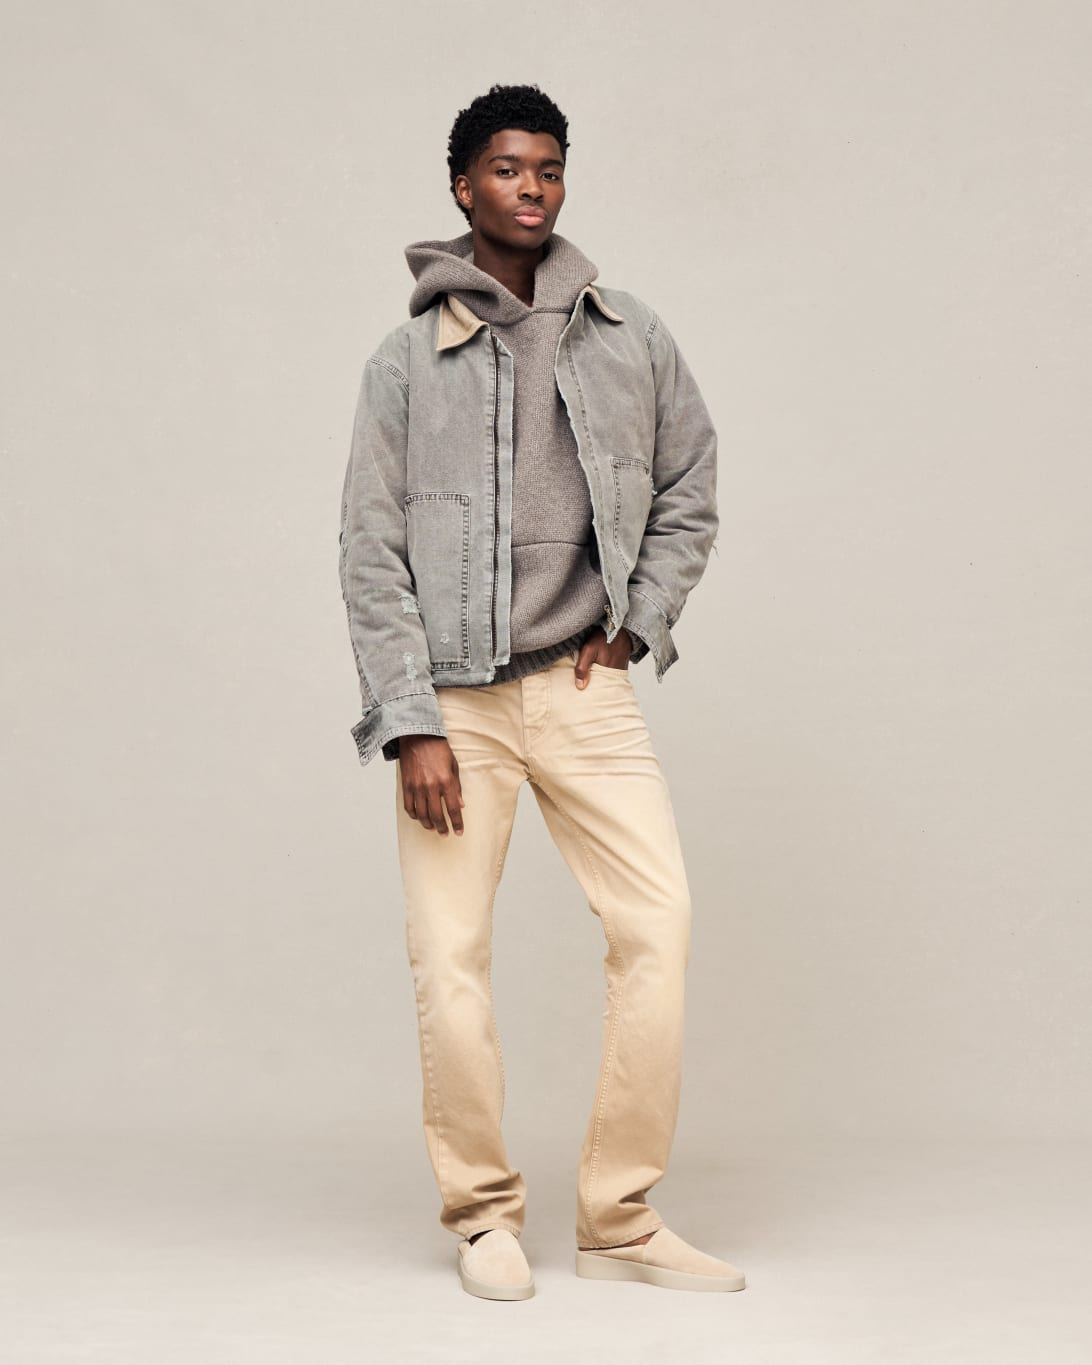 Seventh Collection | Fall/Winter Lookbook Look 39